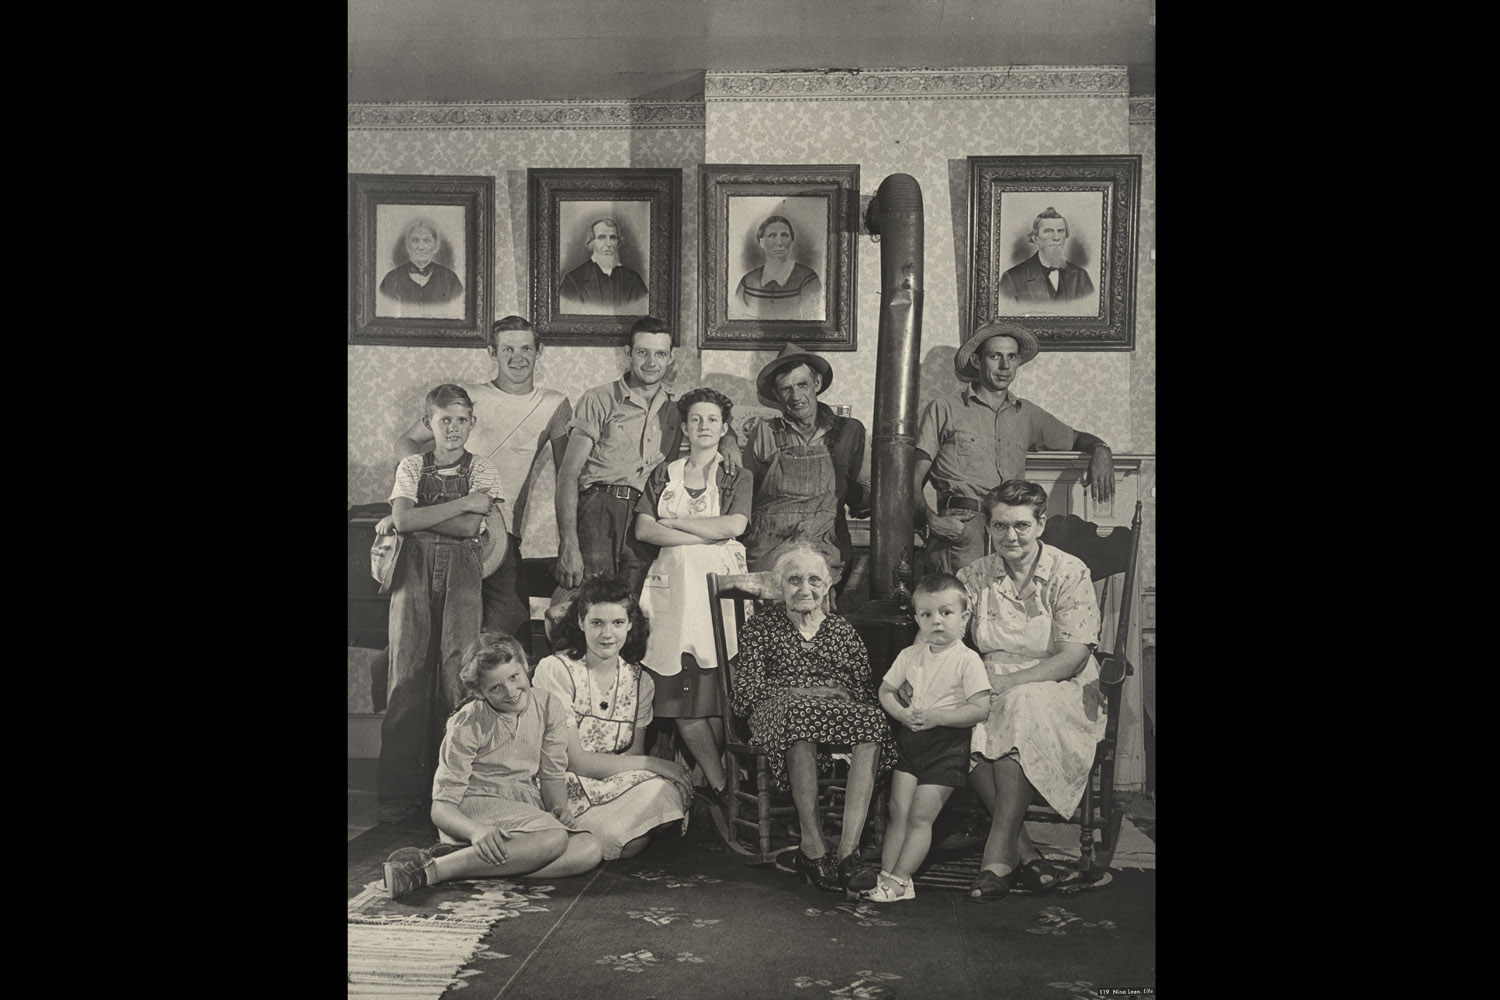 Four generations of farmers in this Ozark family posing in front of a wall with portraits of their fifth generation, 1946.